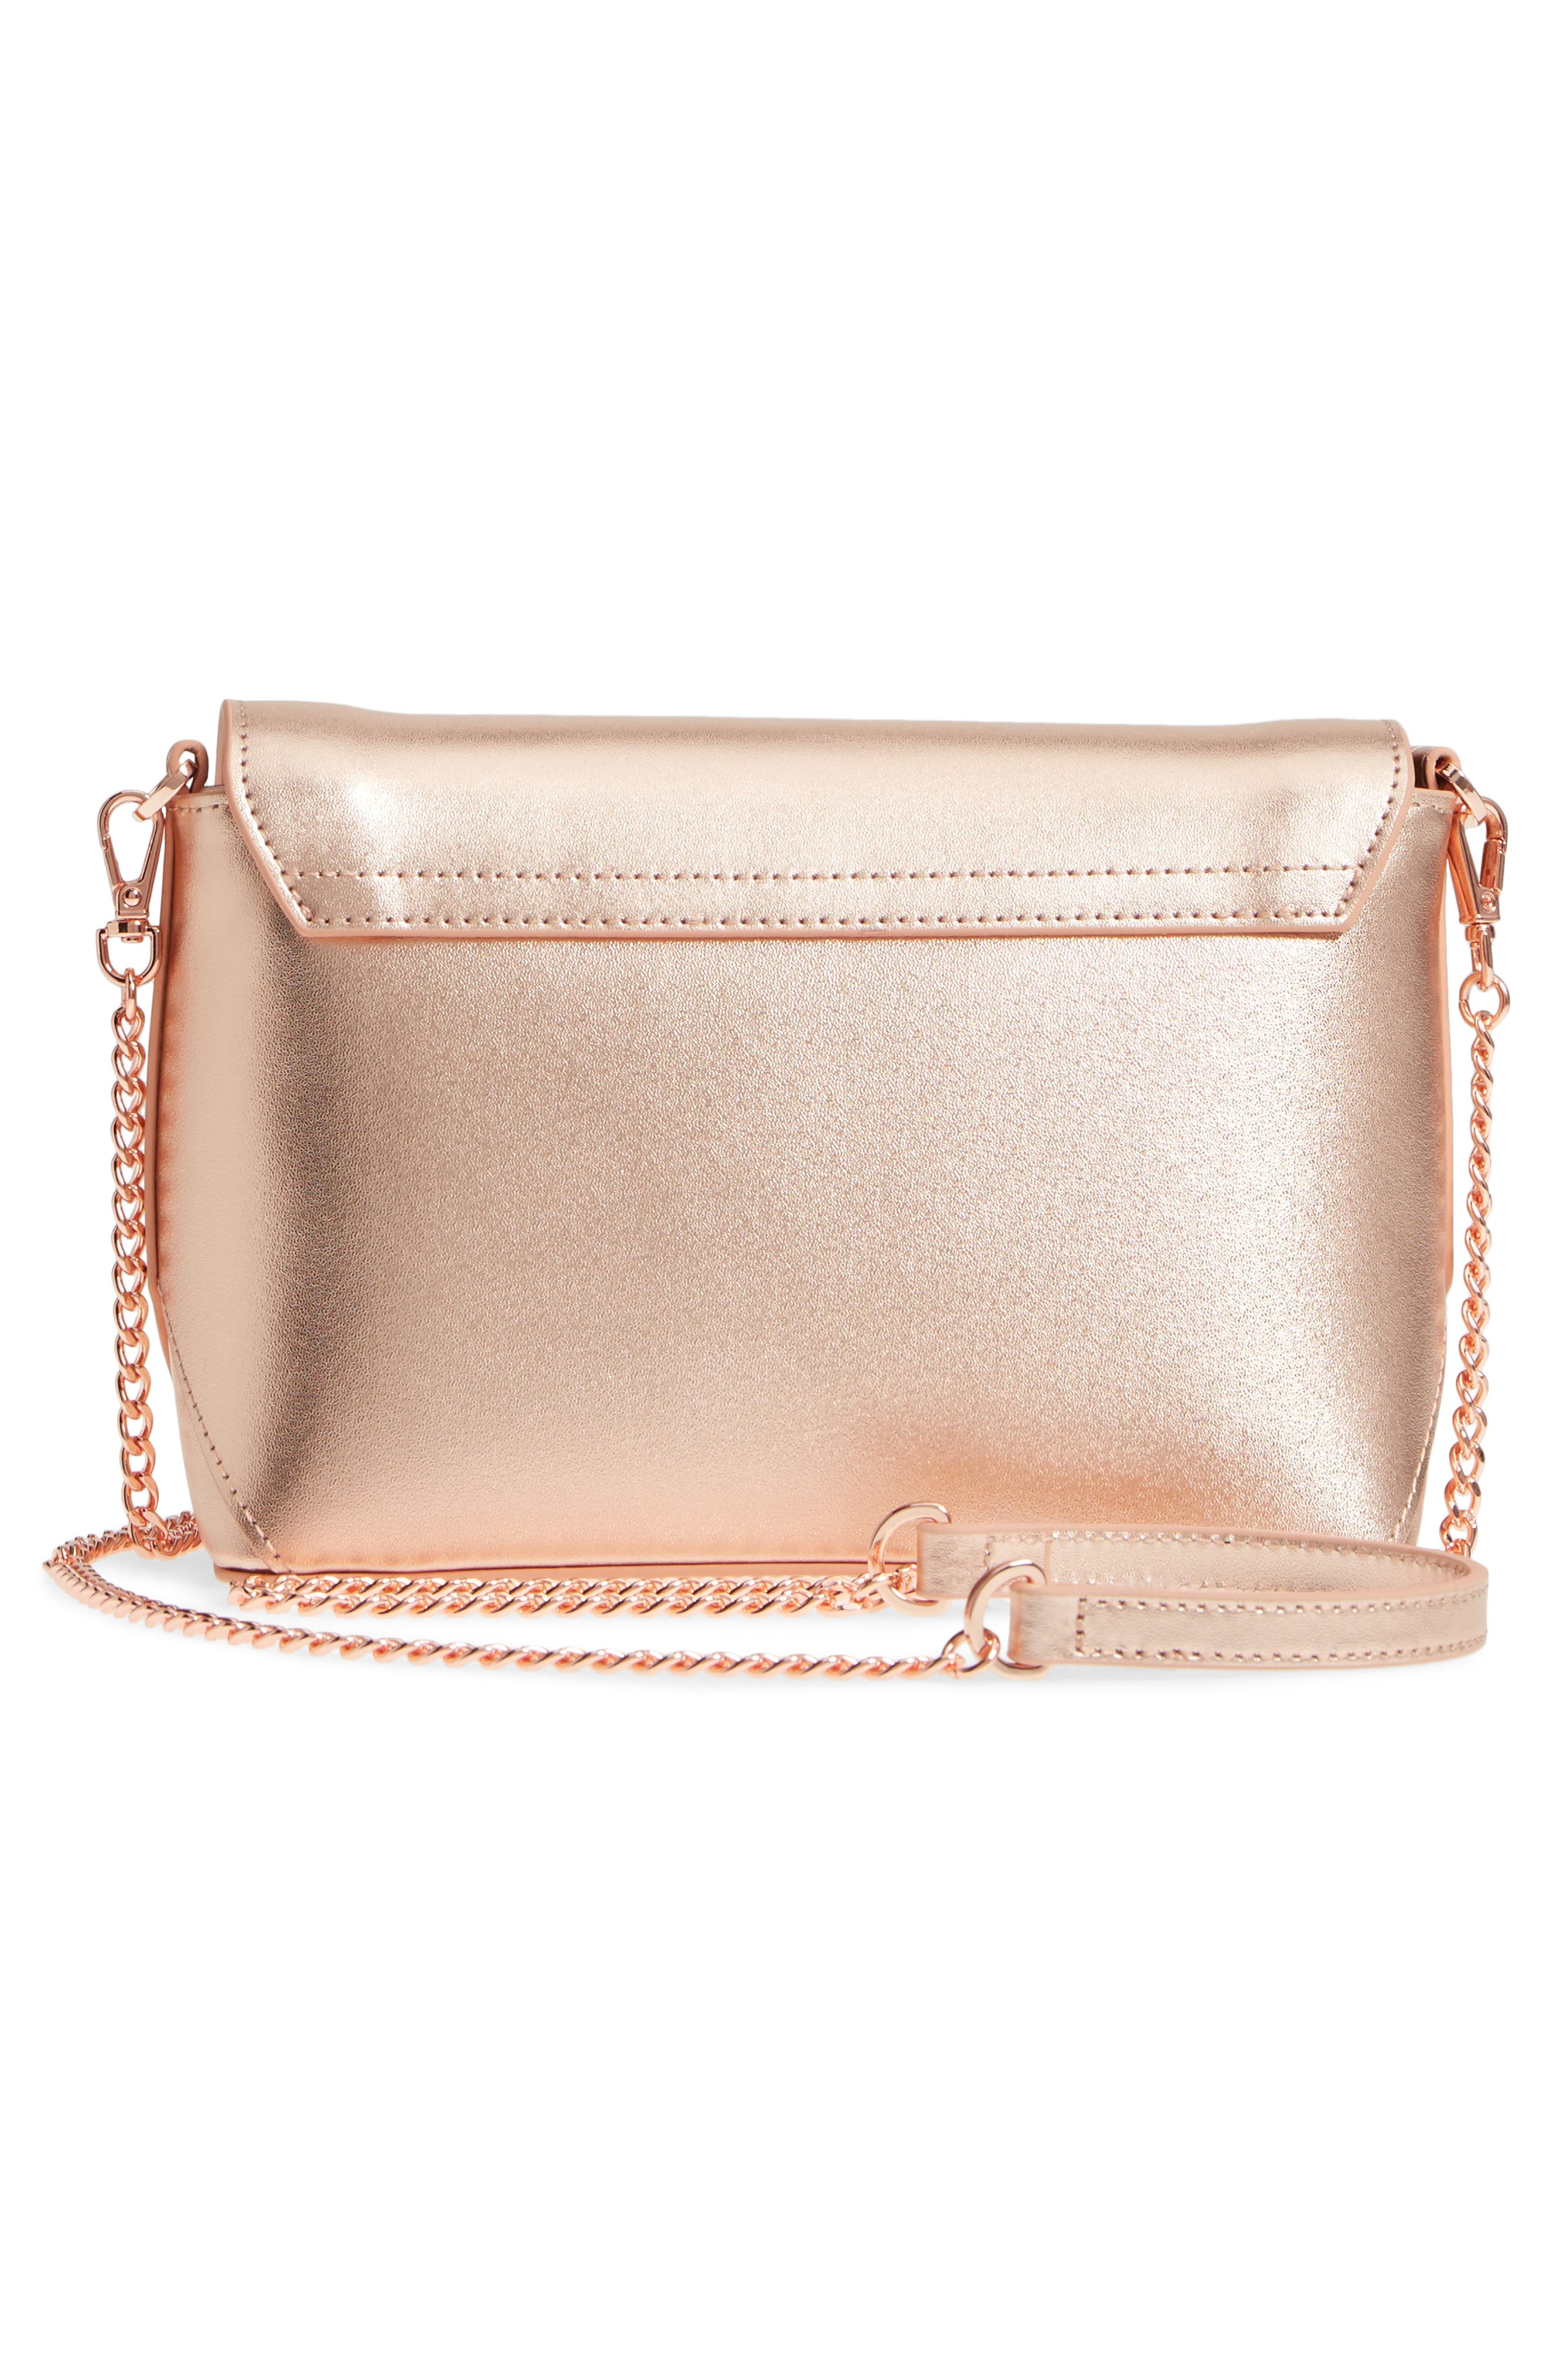 Bow Embossed Leather Crossbody Bag,                             Alternate thumbnail 8, color,